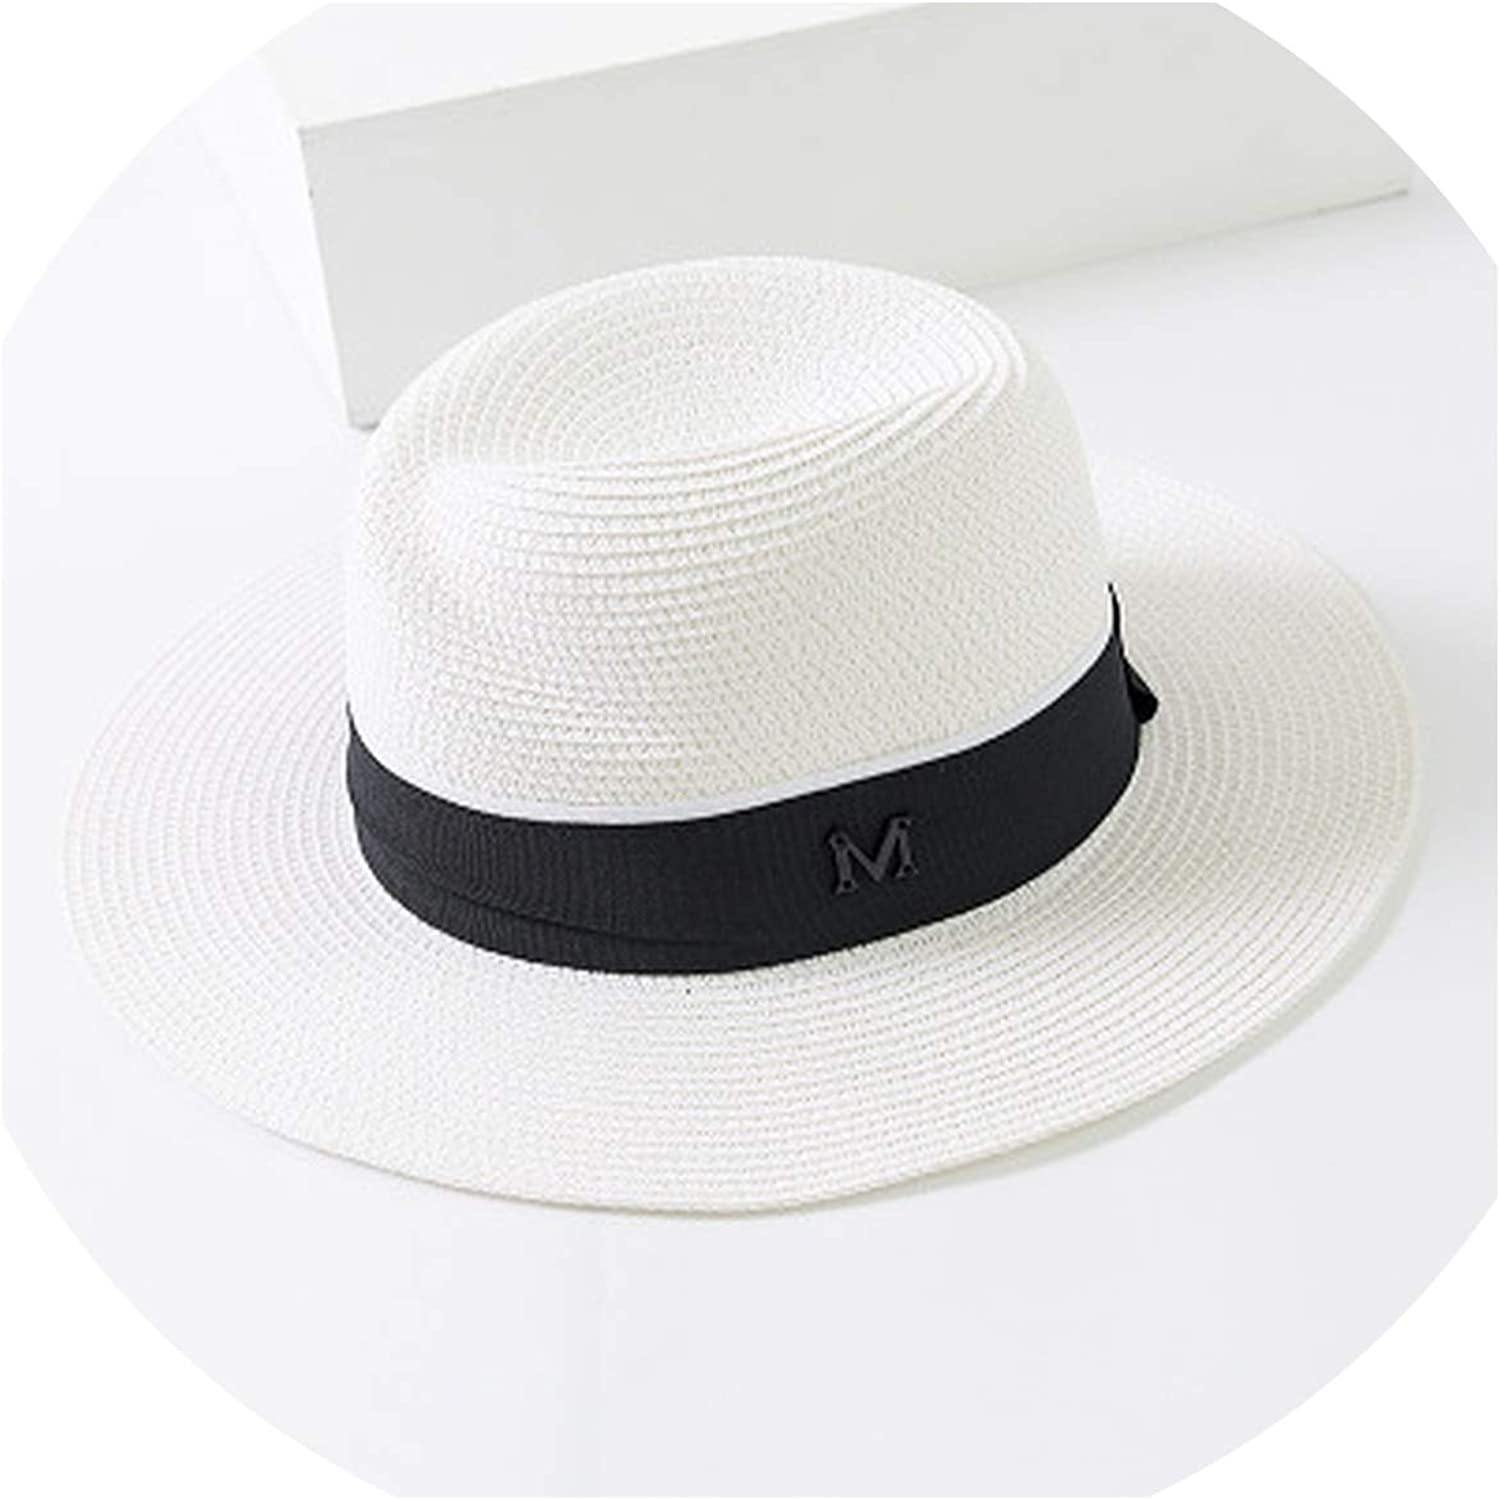 Fashion Panama Hat Large Brim Sun Bonnet Straw Hat Womens Summer Sun Hat with Ribbon Foldable Adjustable